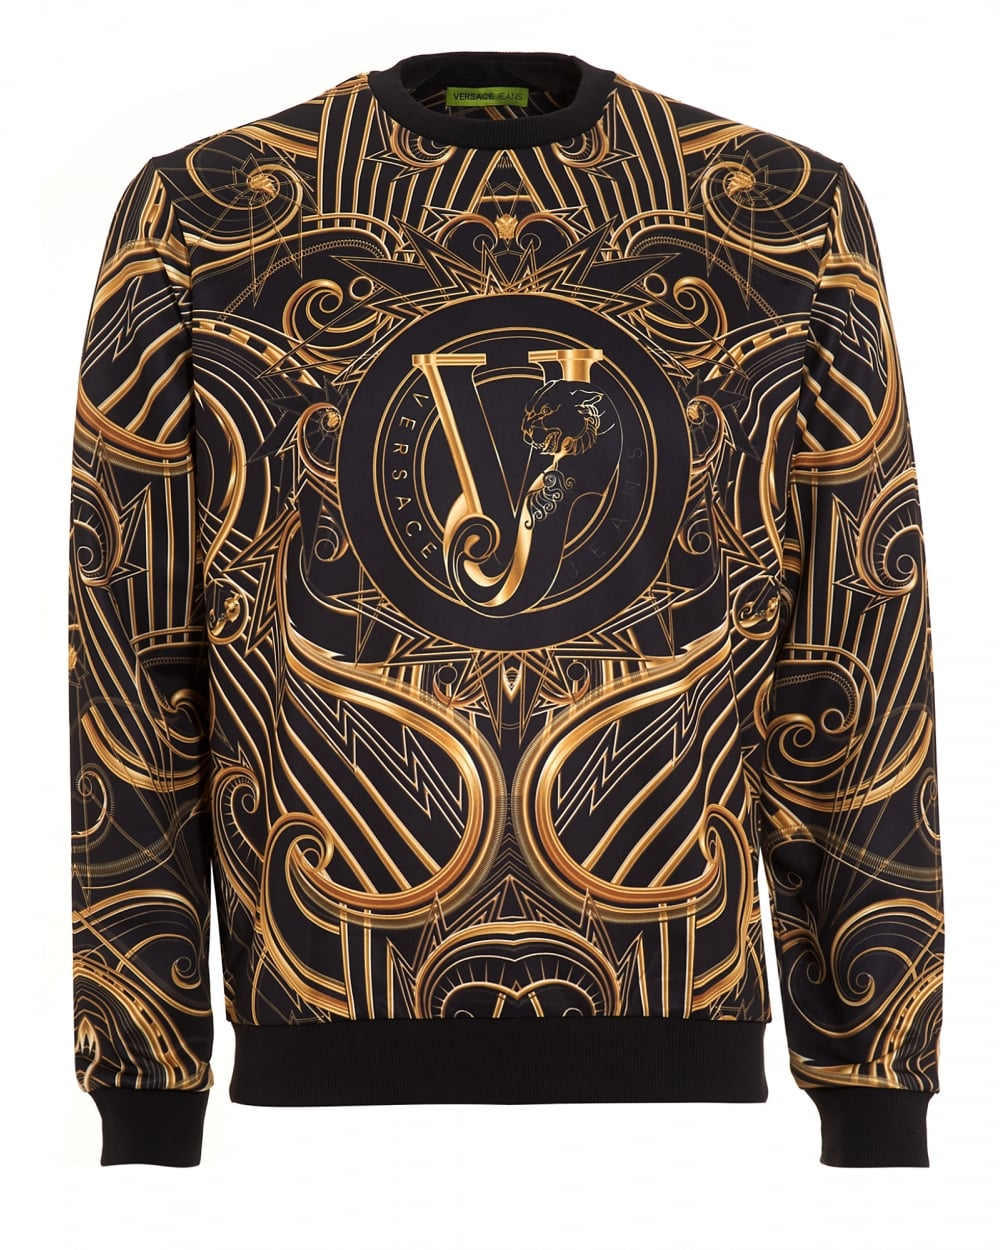 Versace Jeans Mens All-Over Baroque Logo Black Sweatshirt bd309493bcd